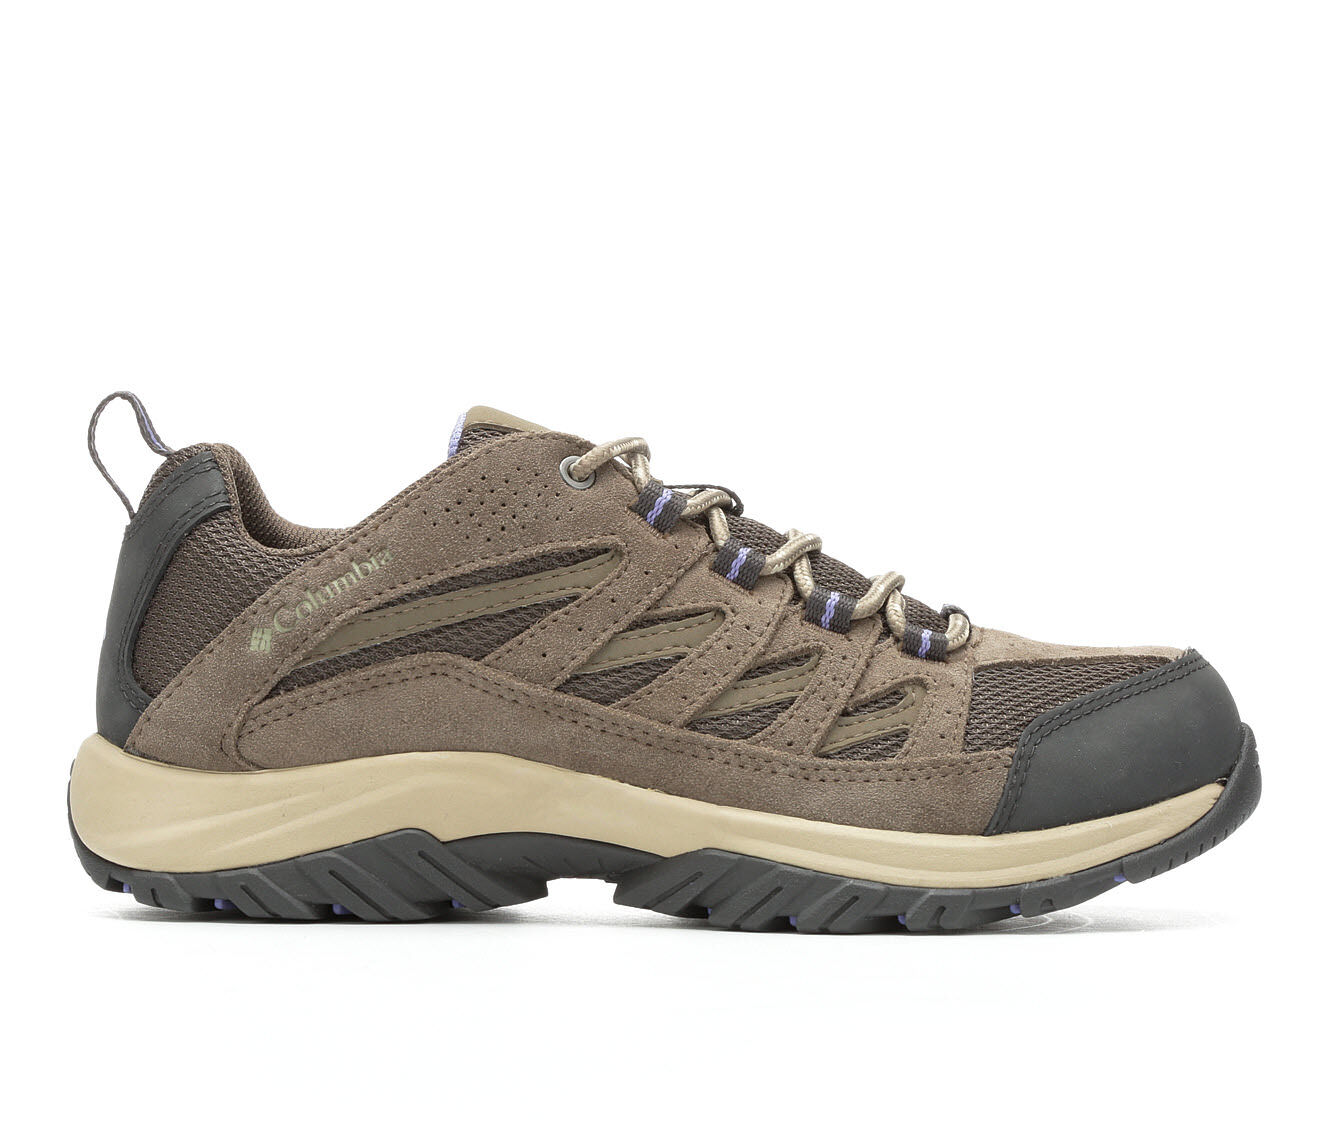 Women's Columbia Crestwood Low Hiking Shoes Mudd/Fairytale